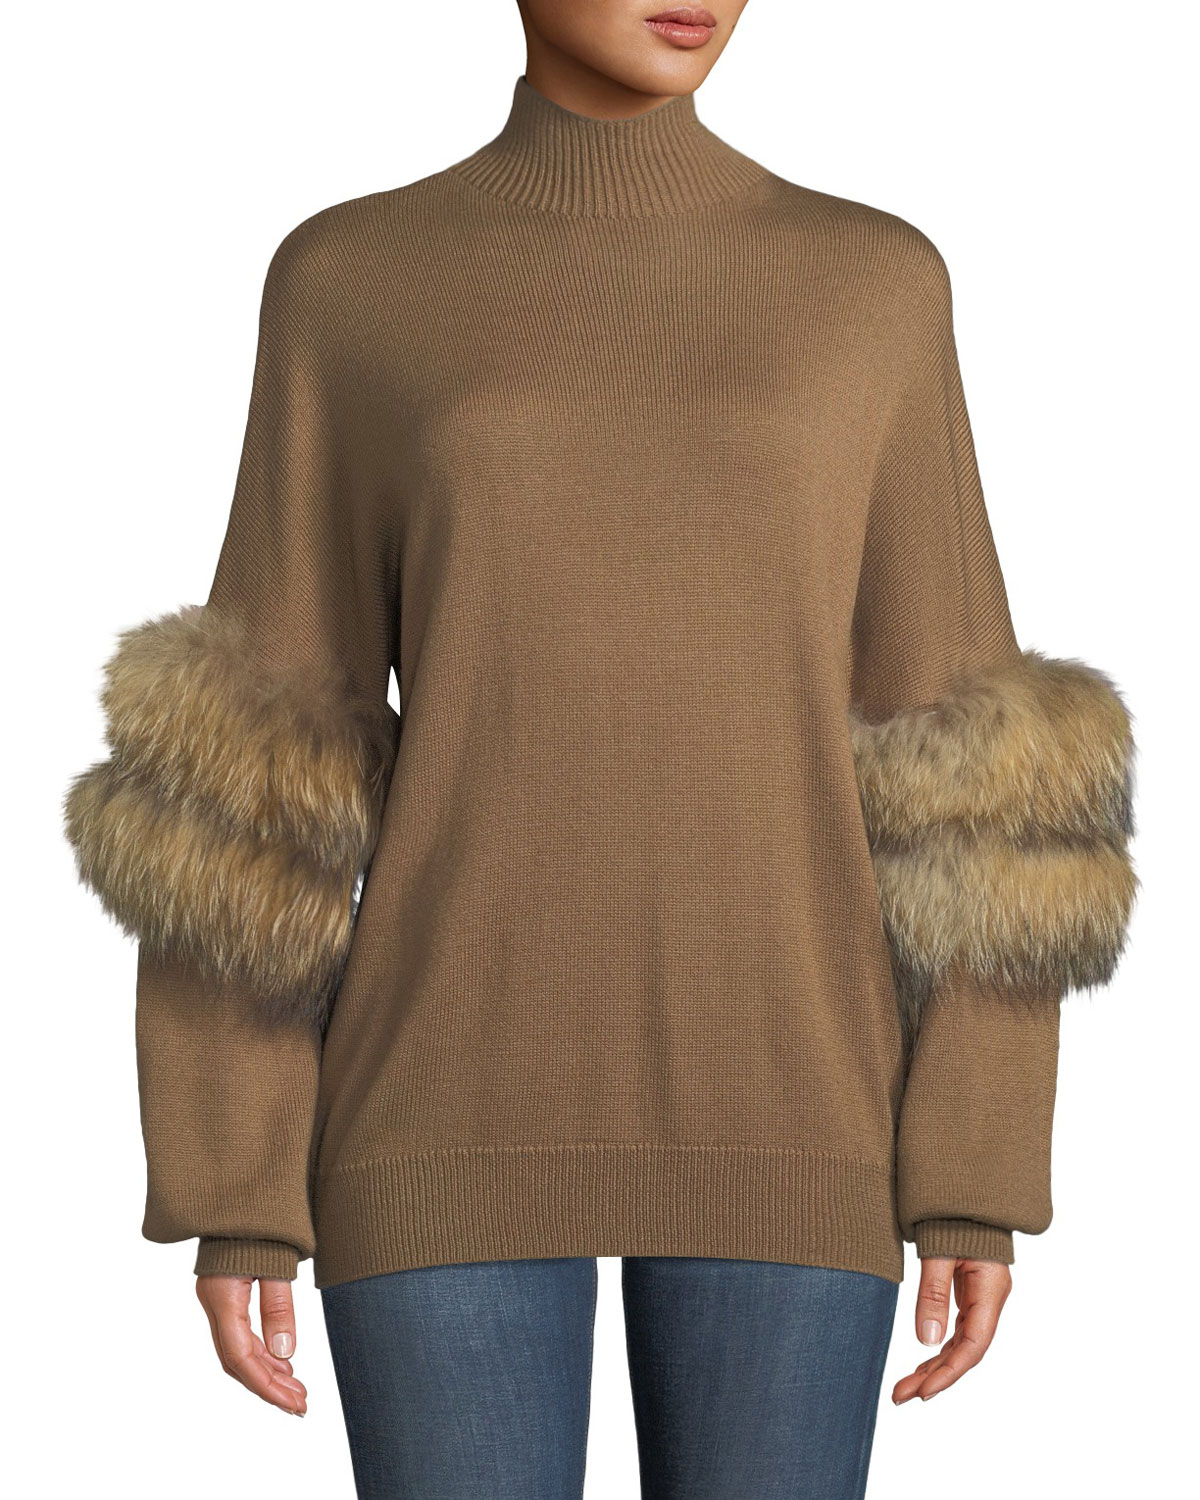 Sweater With Fur Sleeves